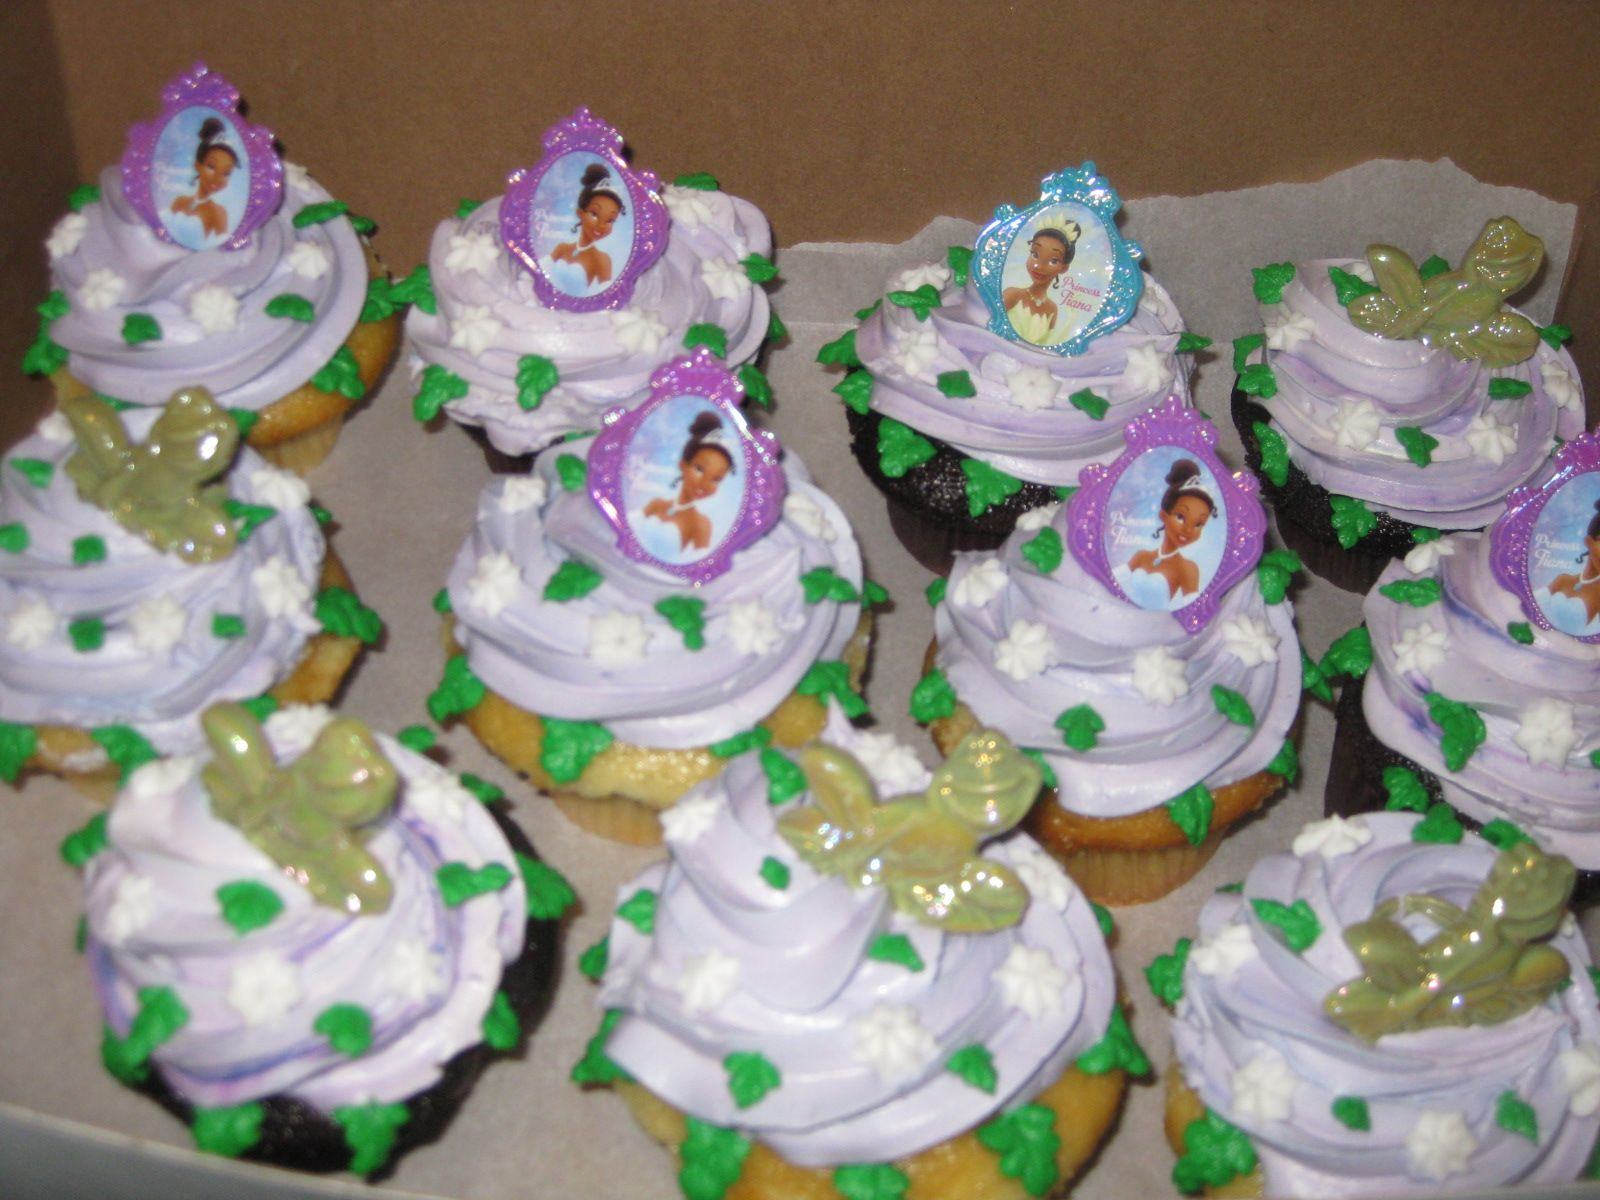 Princess And The Frog Cupcakes Inspirations By Thyjuan Llc The